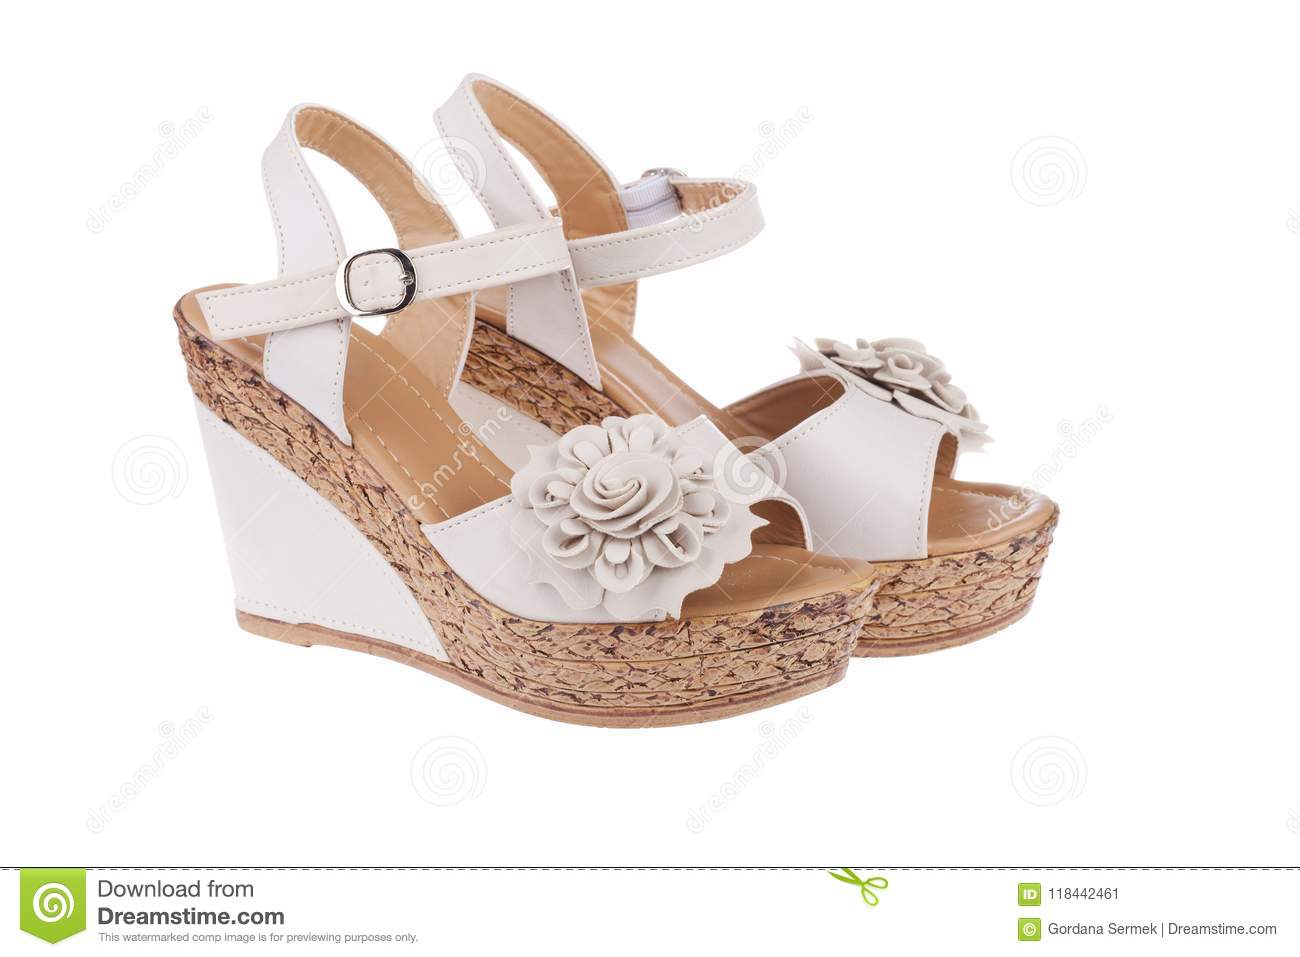 41132c8e20d High Heels Shoes In Nude Color With Flower Stock Image - Image of ...